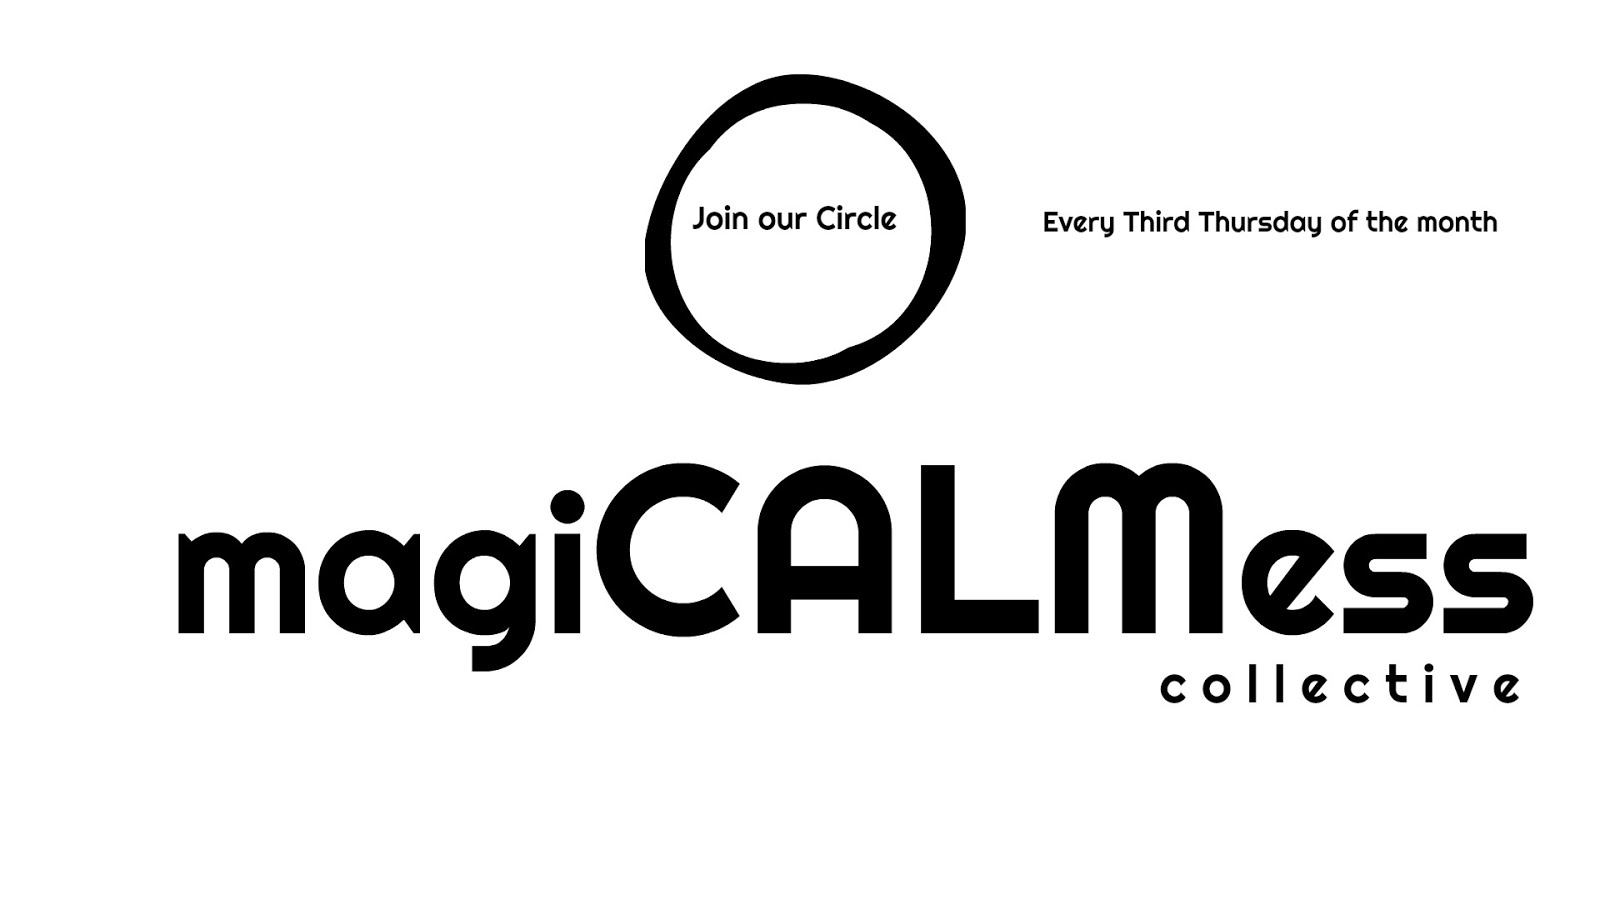 magiCALMess collective